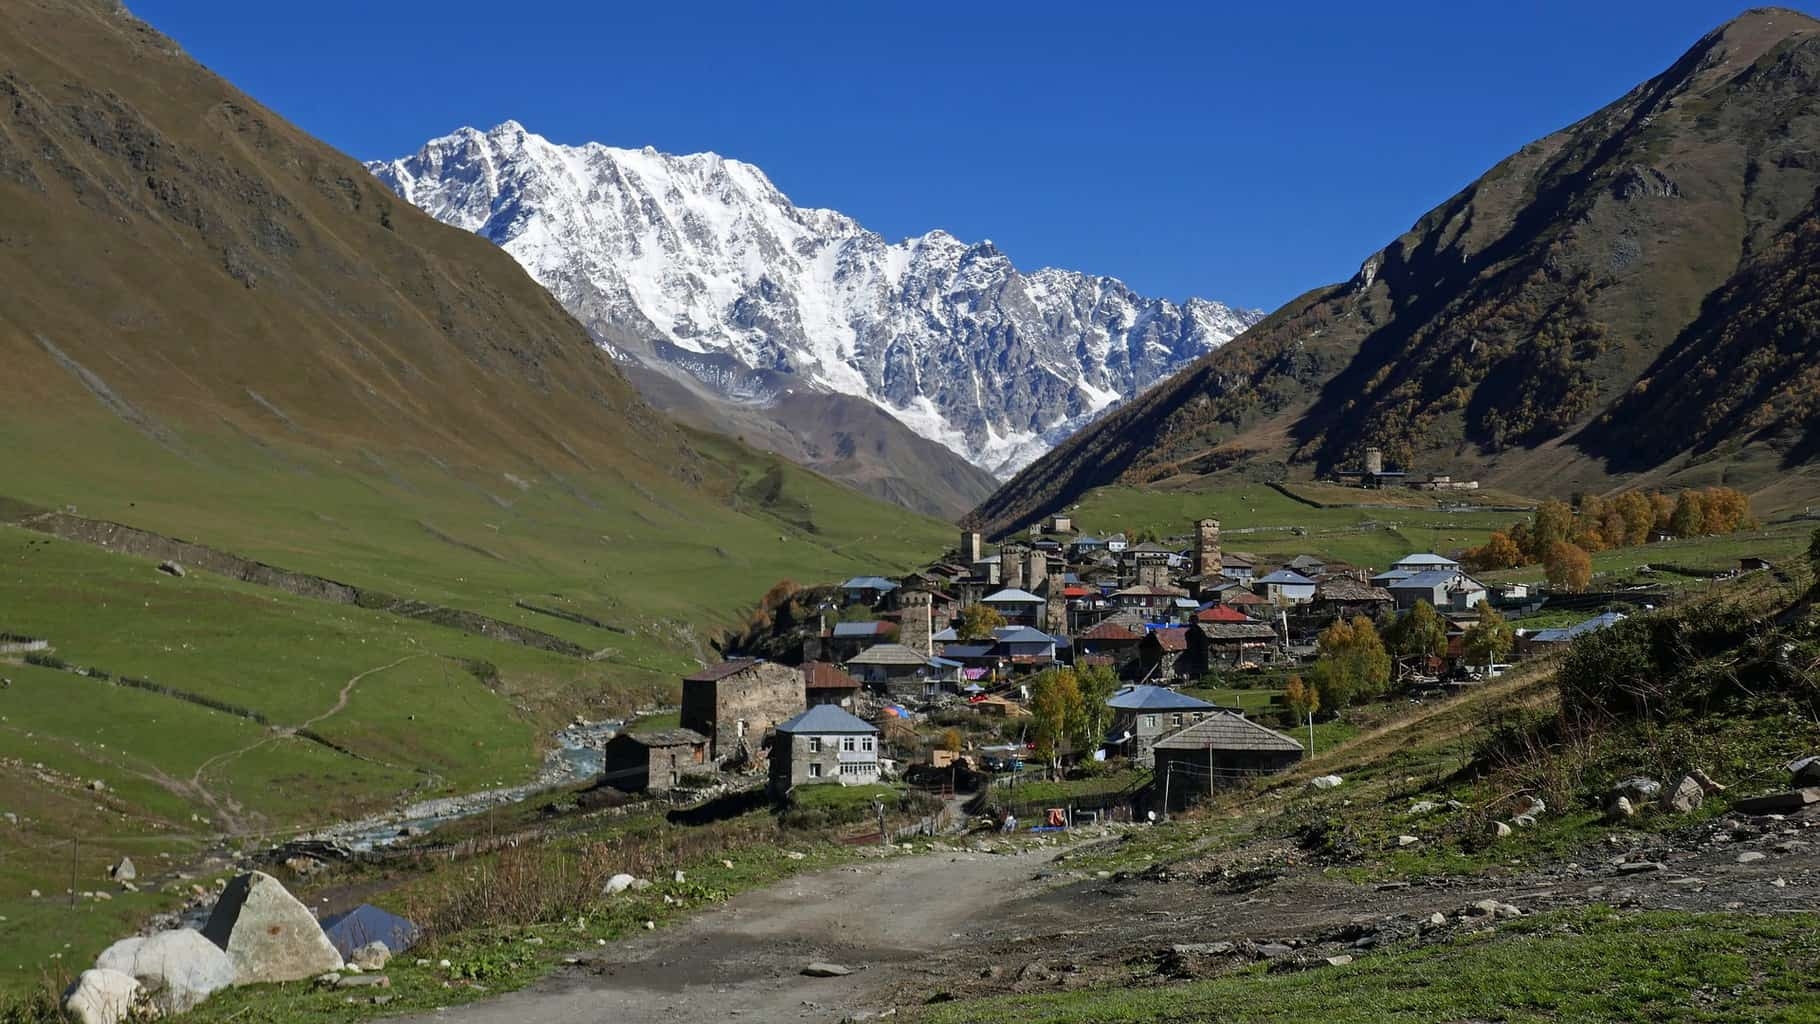 Svaneti, one of the regions of Georgia, the country